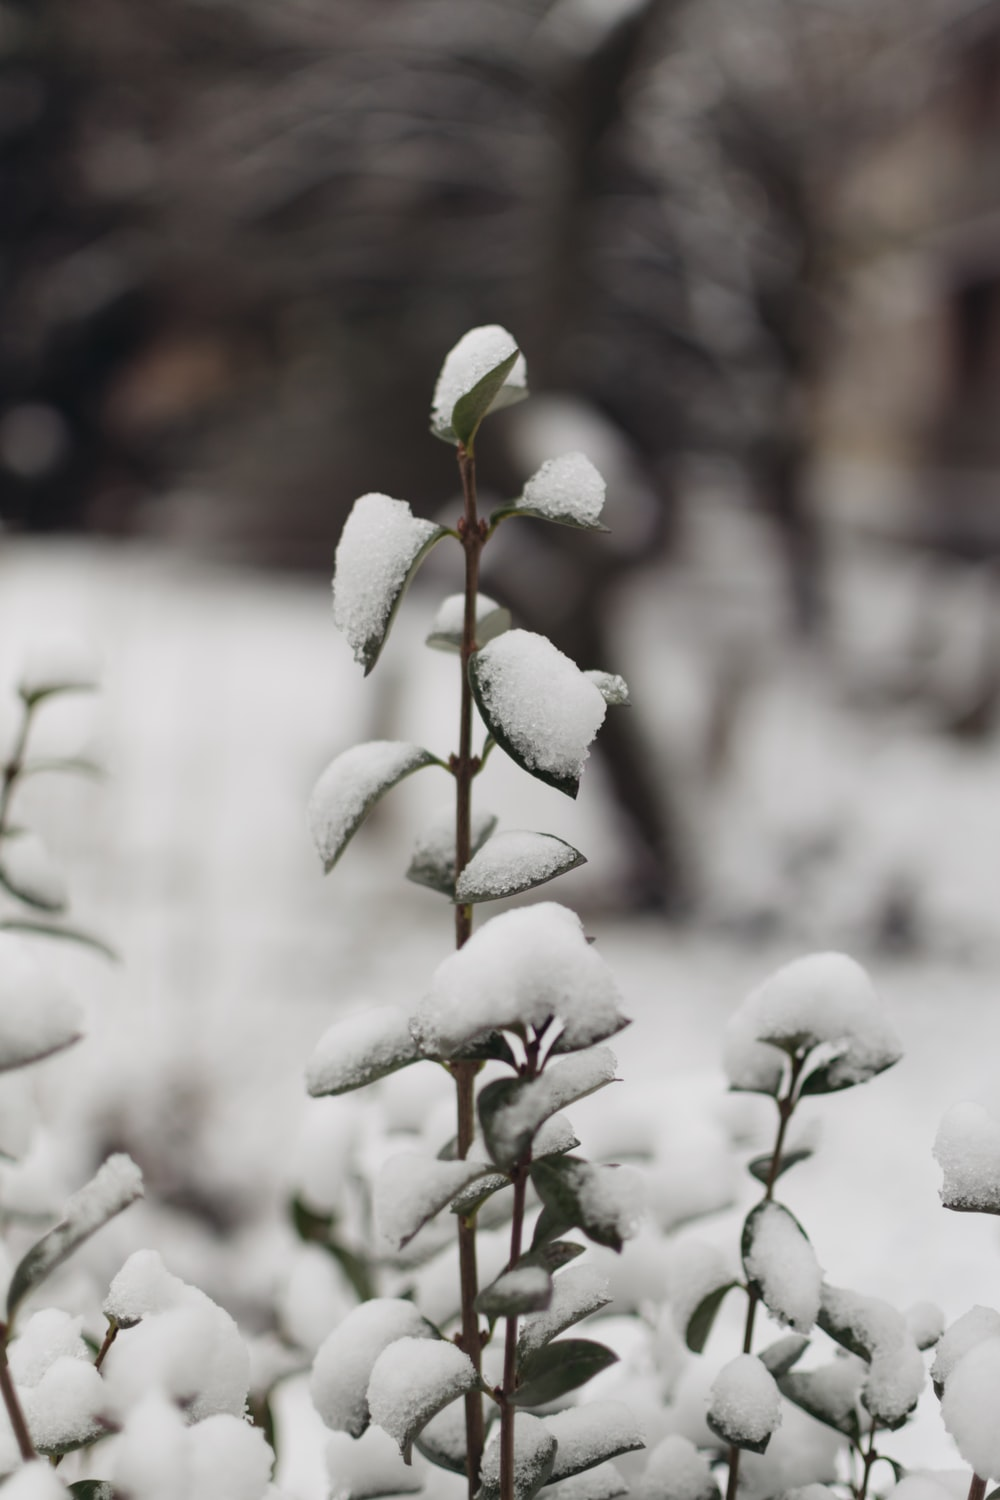 snow covered green leafed plant in selective focus photography